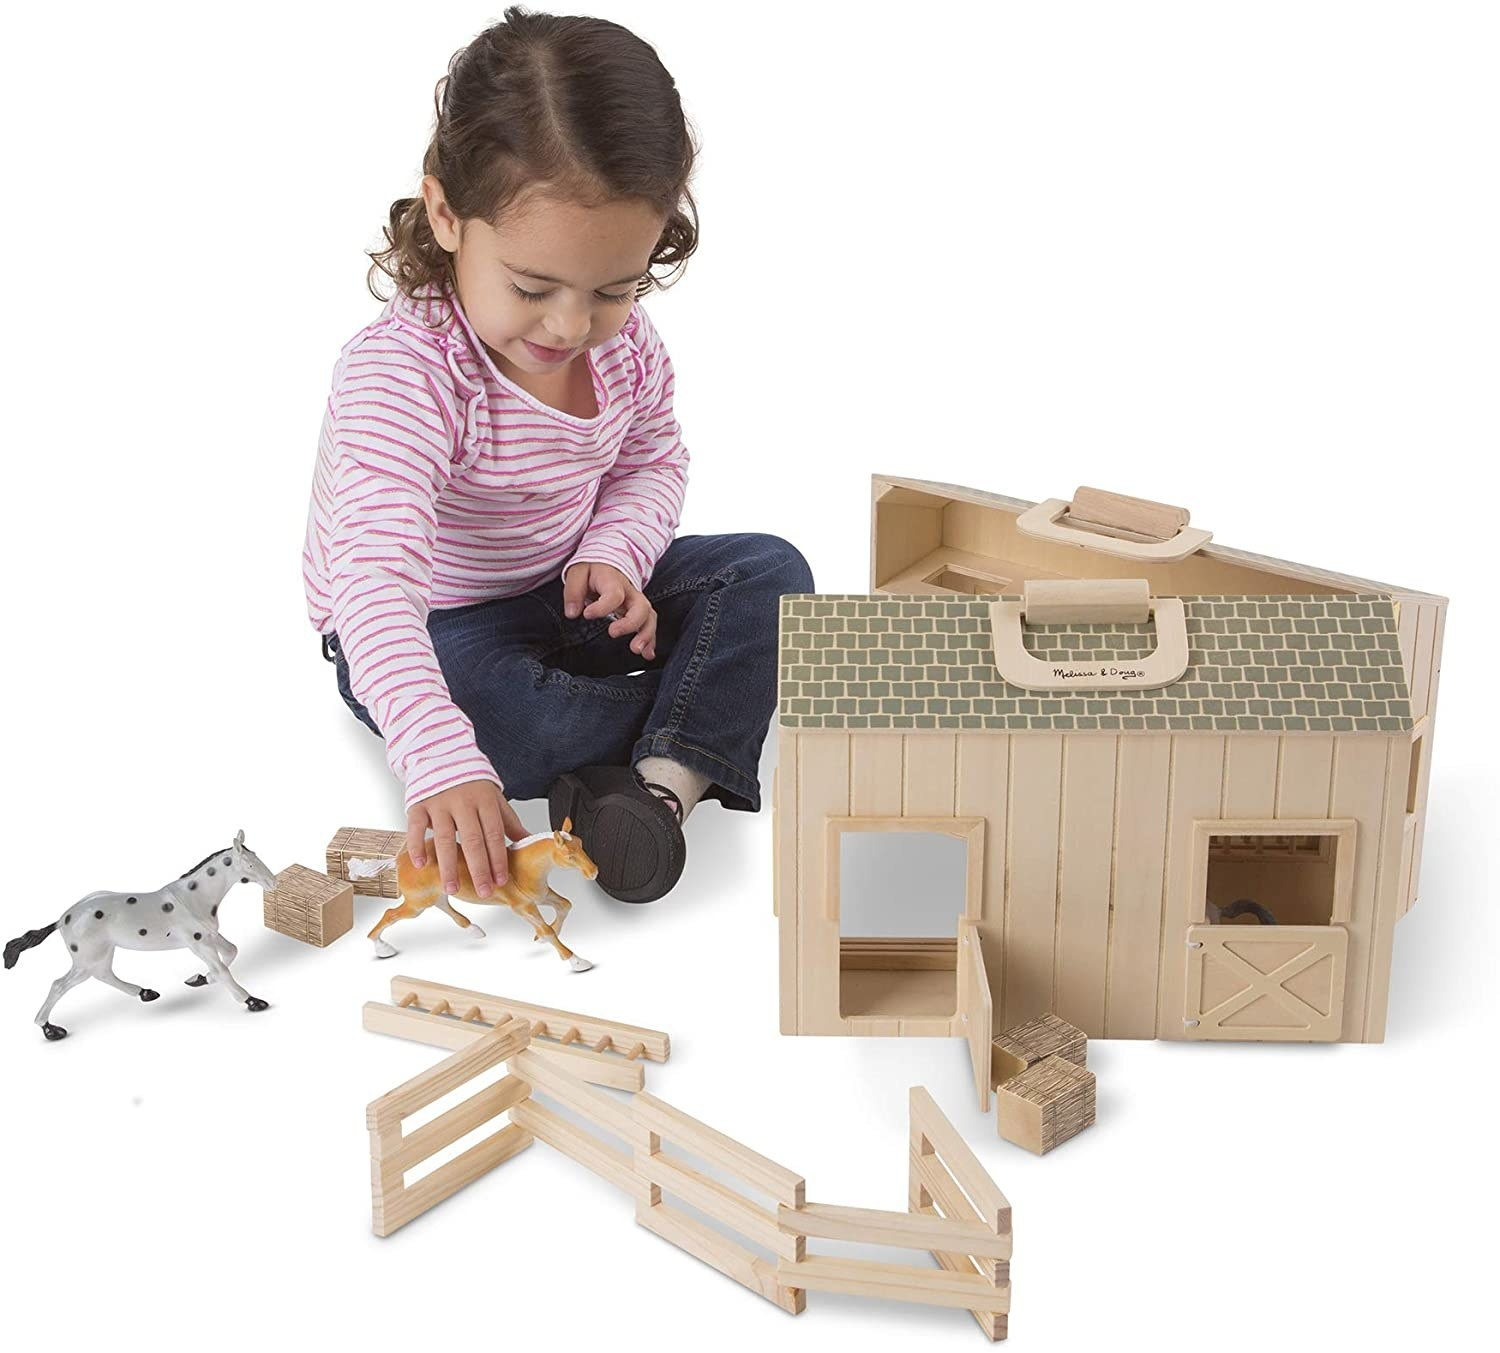 A child plays with a toy stable with two toy horses